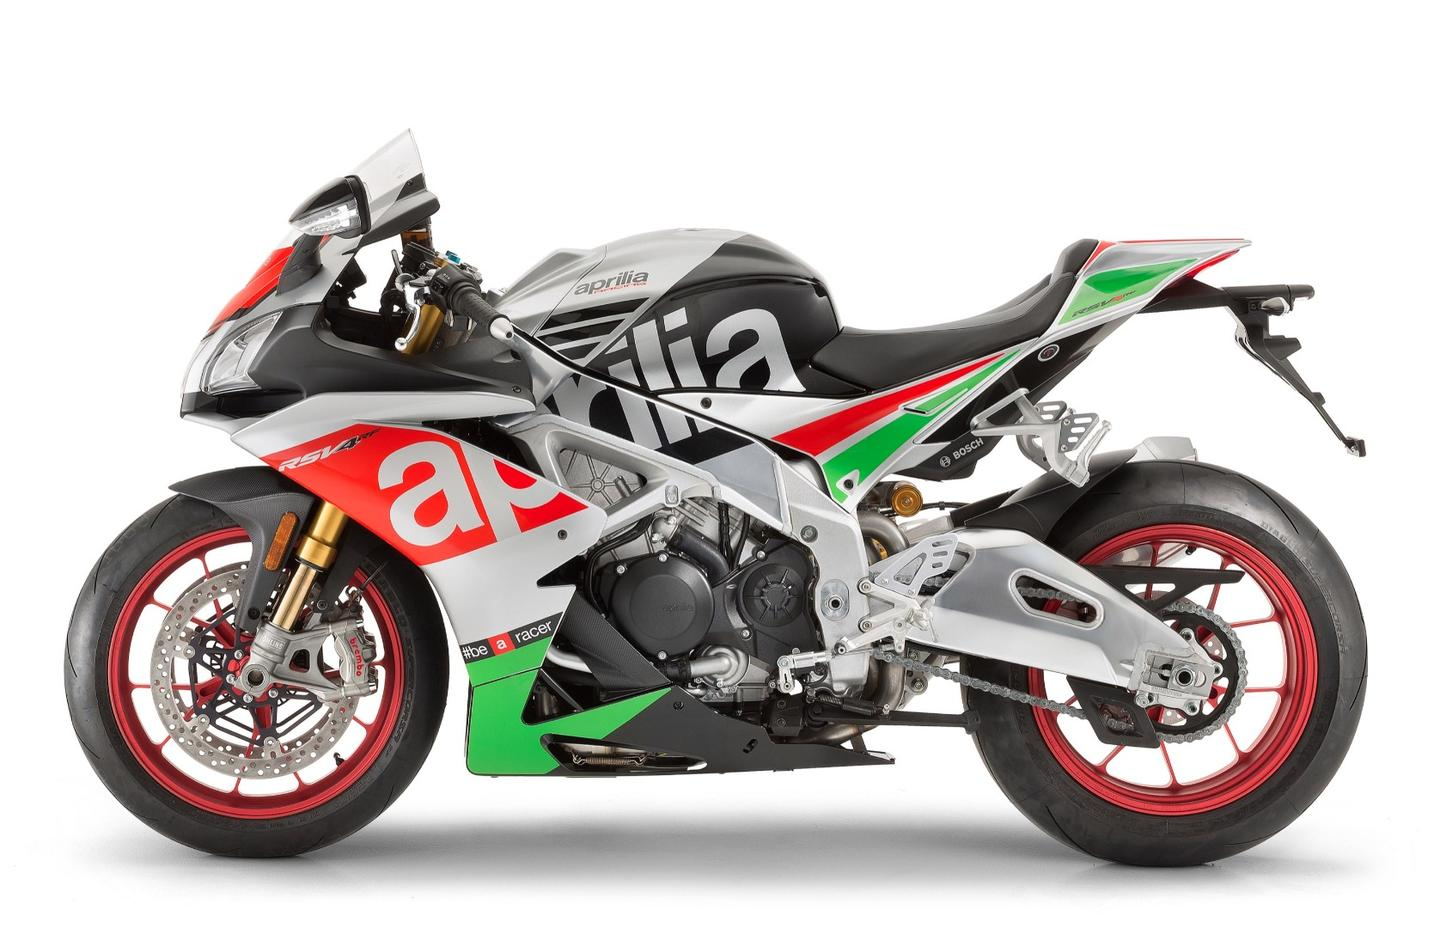 The new Aprilia RSV4 Factory features a plethora of new electronic controls with on the fly adjustments